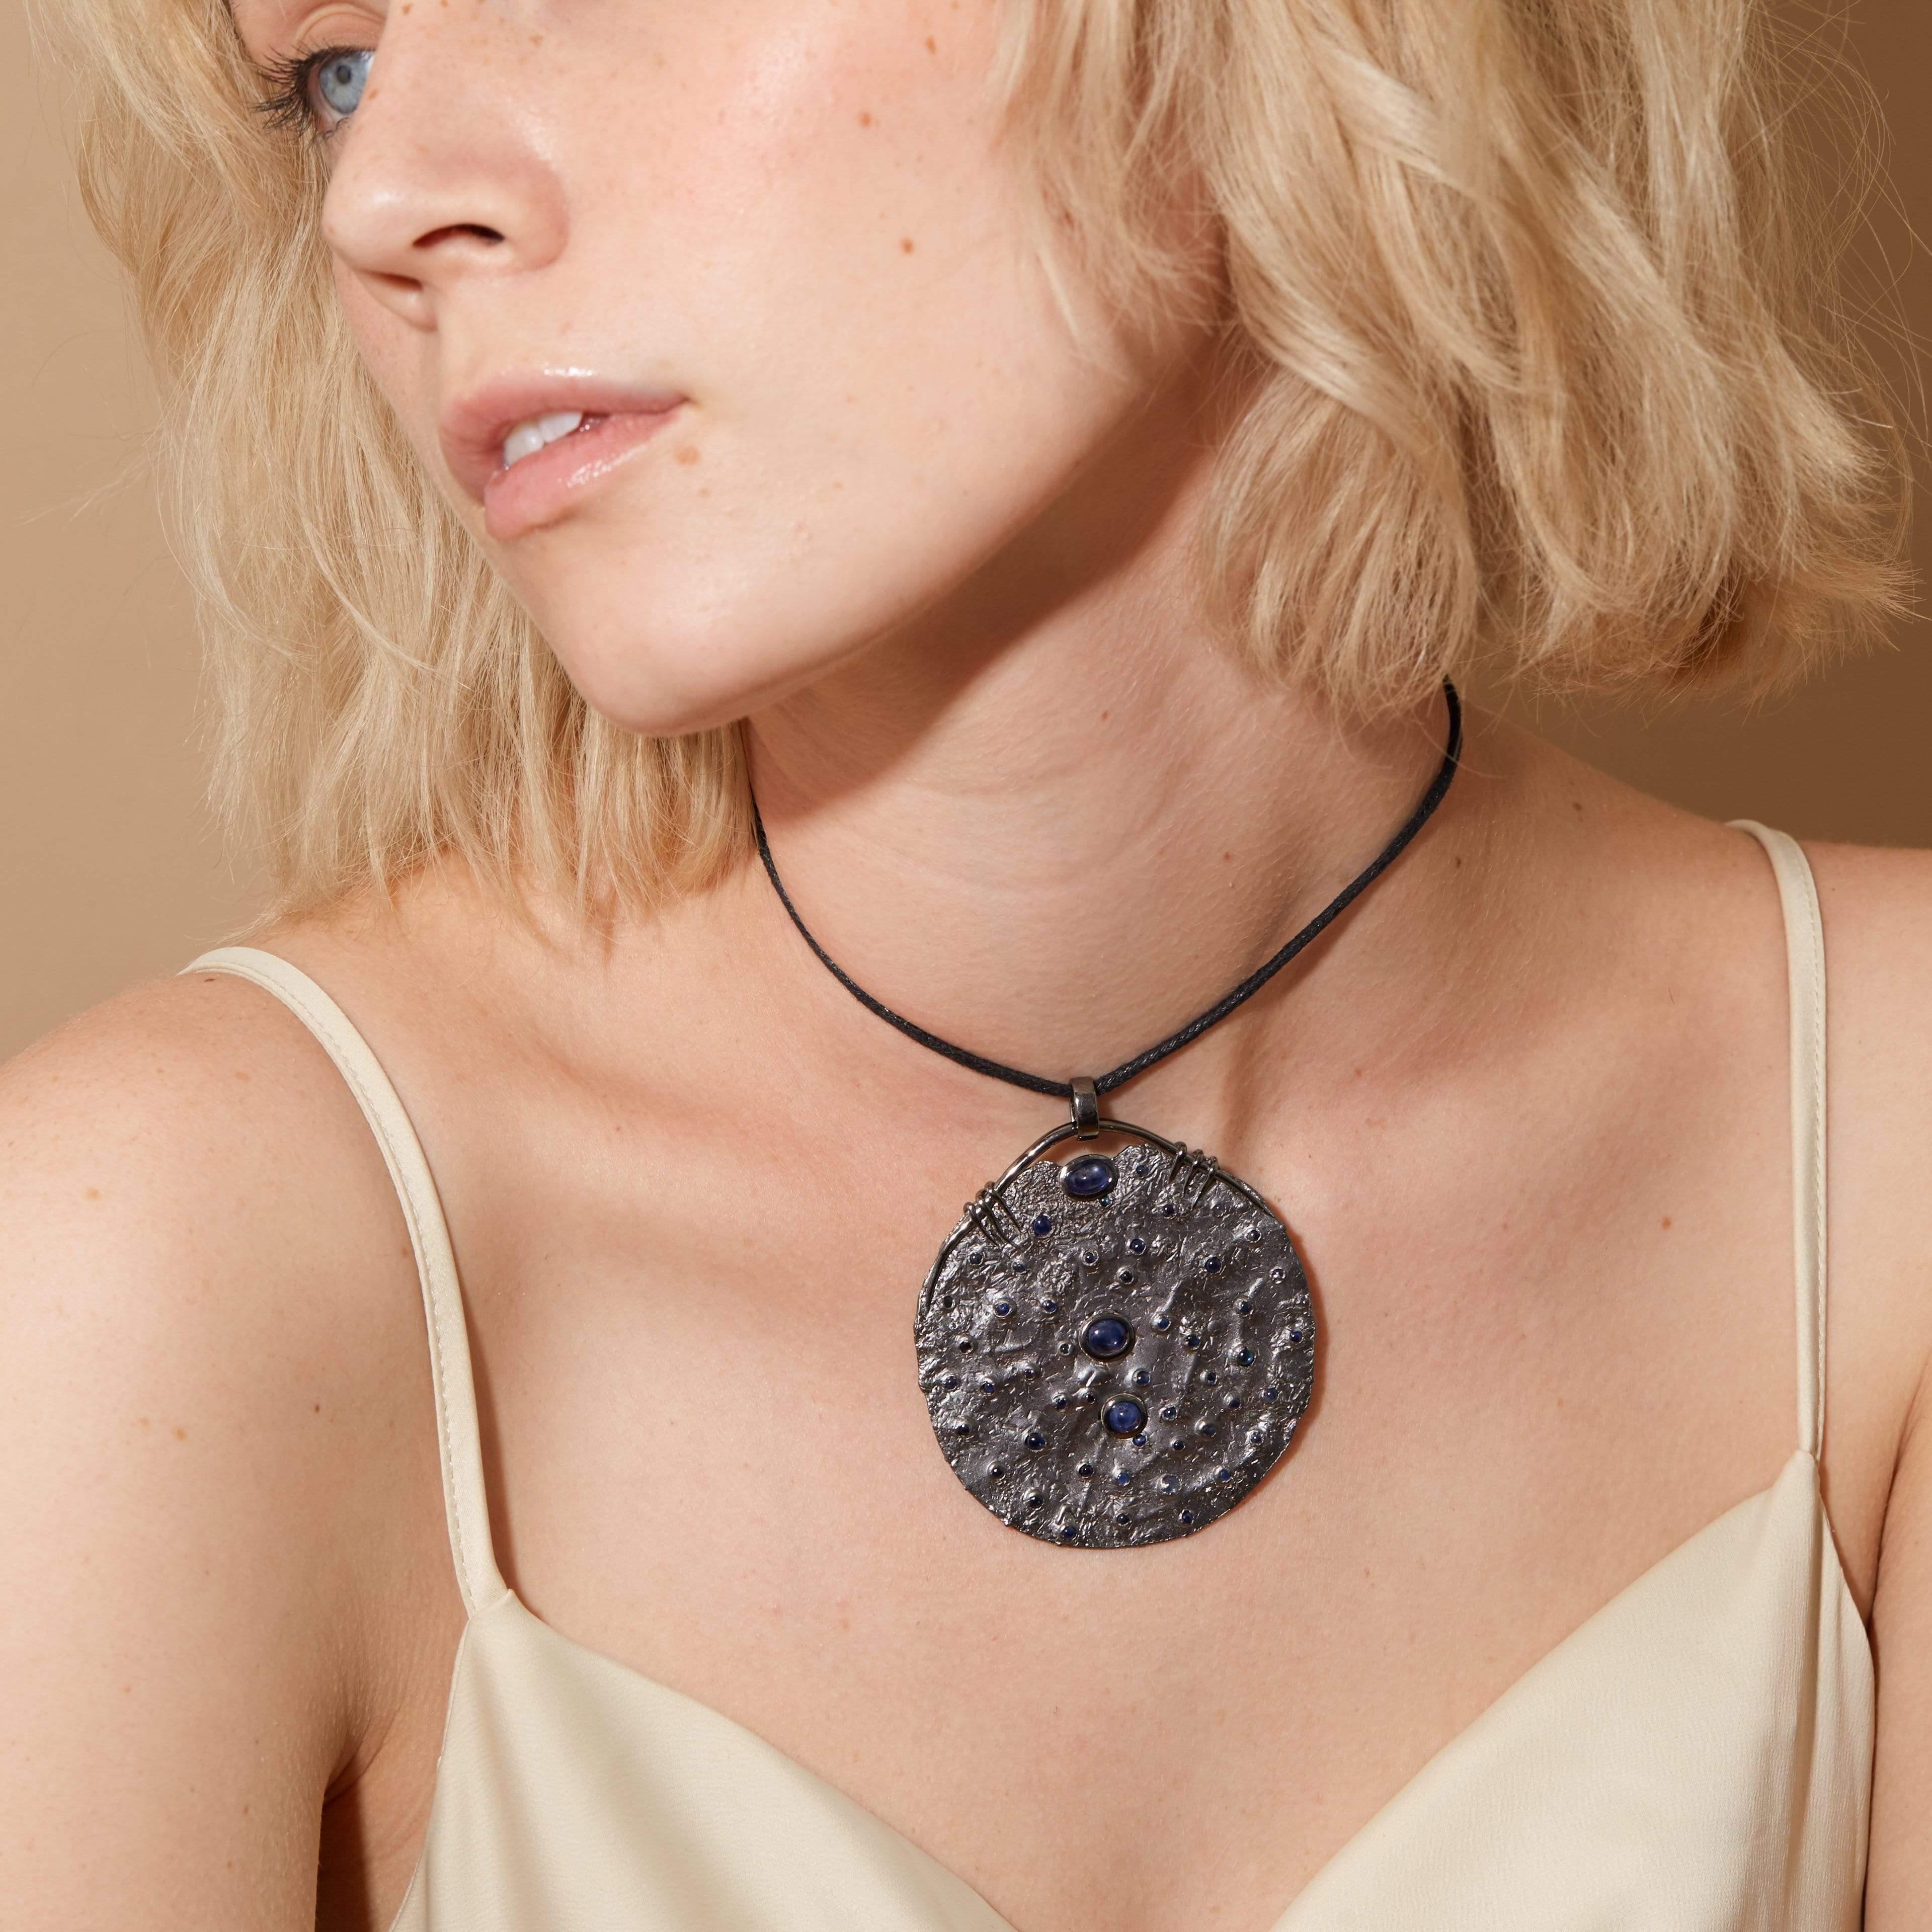 Kallista Pendant, Exclusive, gray, Rhodium, Sapphire, spo-disabled, StoneColor:Black, Style:Statement, Type:StoneCandyScattered Pendant